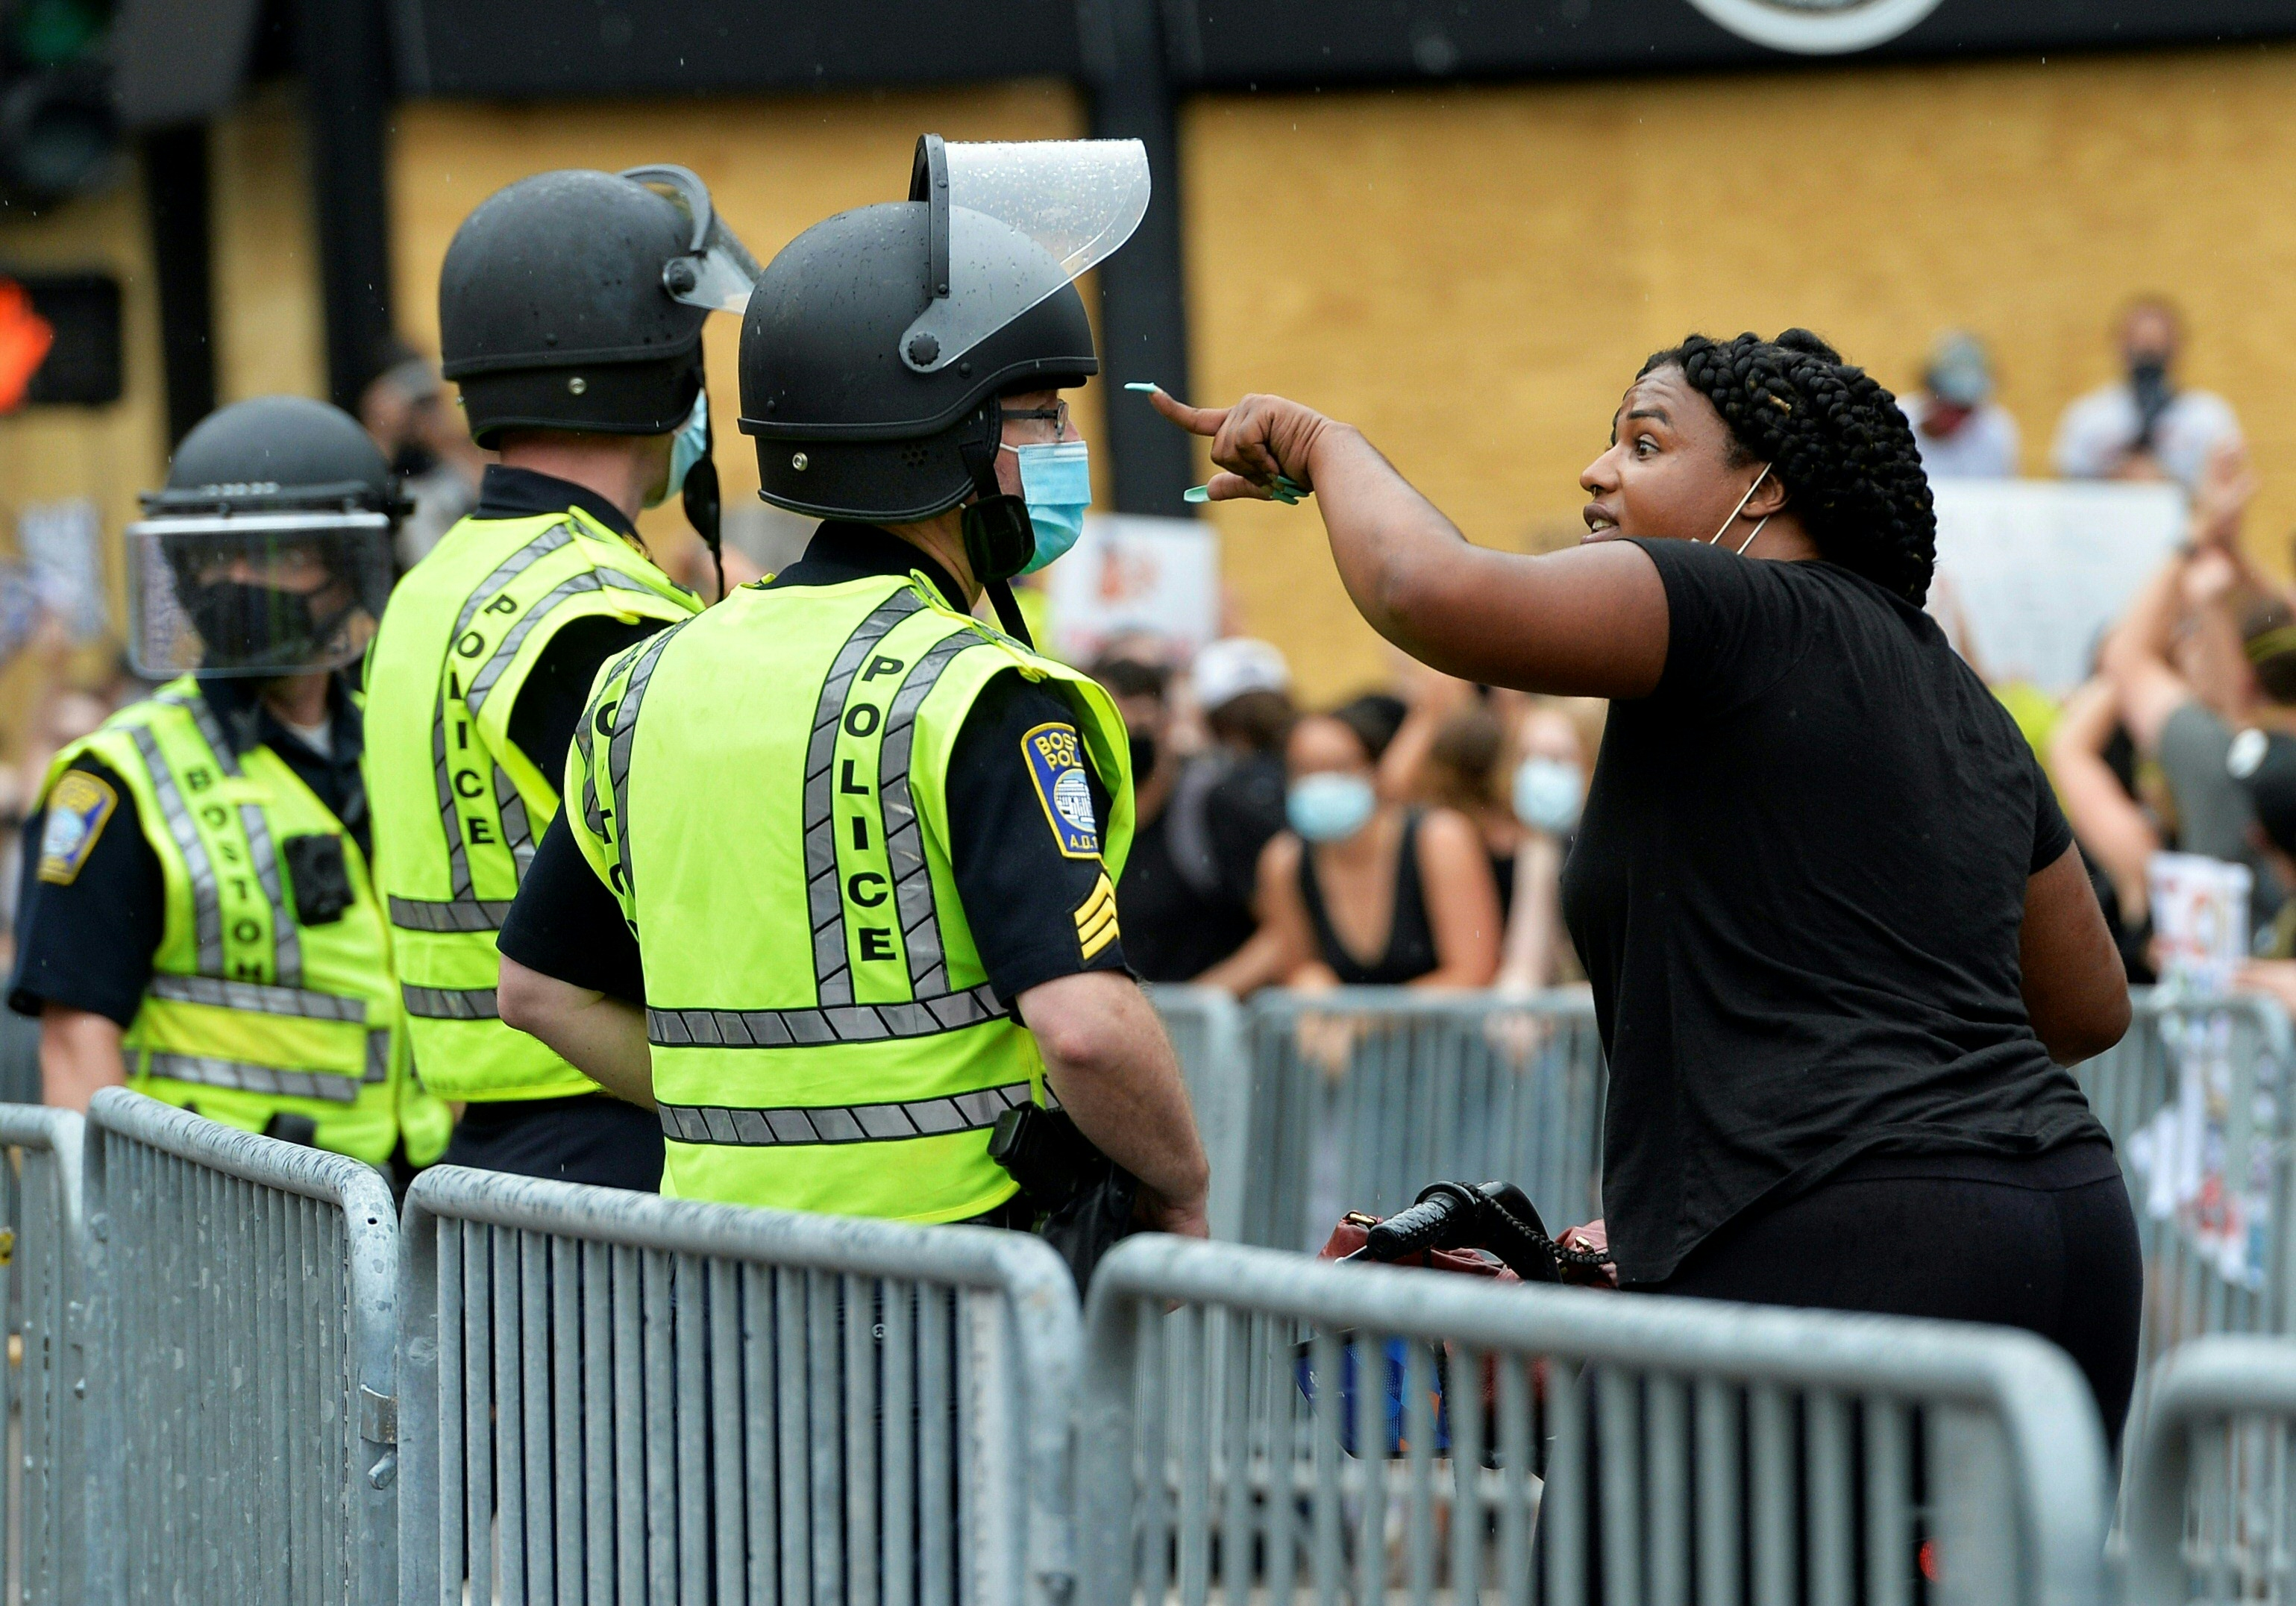 A women argues with police officers during a rally outside the Massachusetts State House in Boston on June 27, 2020. (Photo: Joseph Prezioso/AFP via Getty Images)